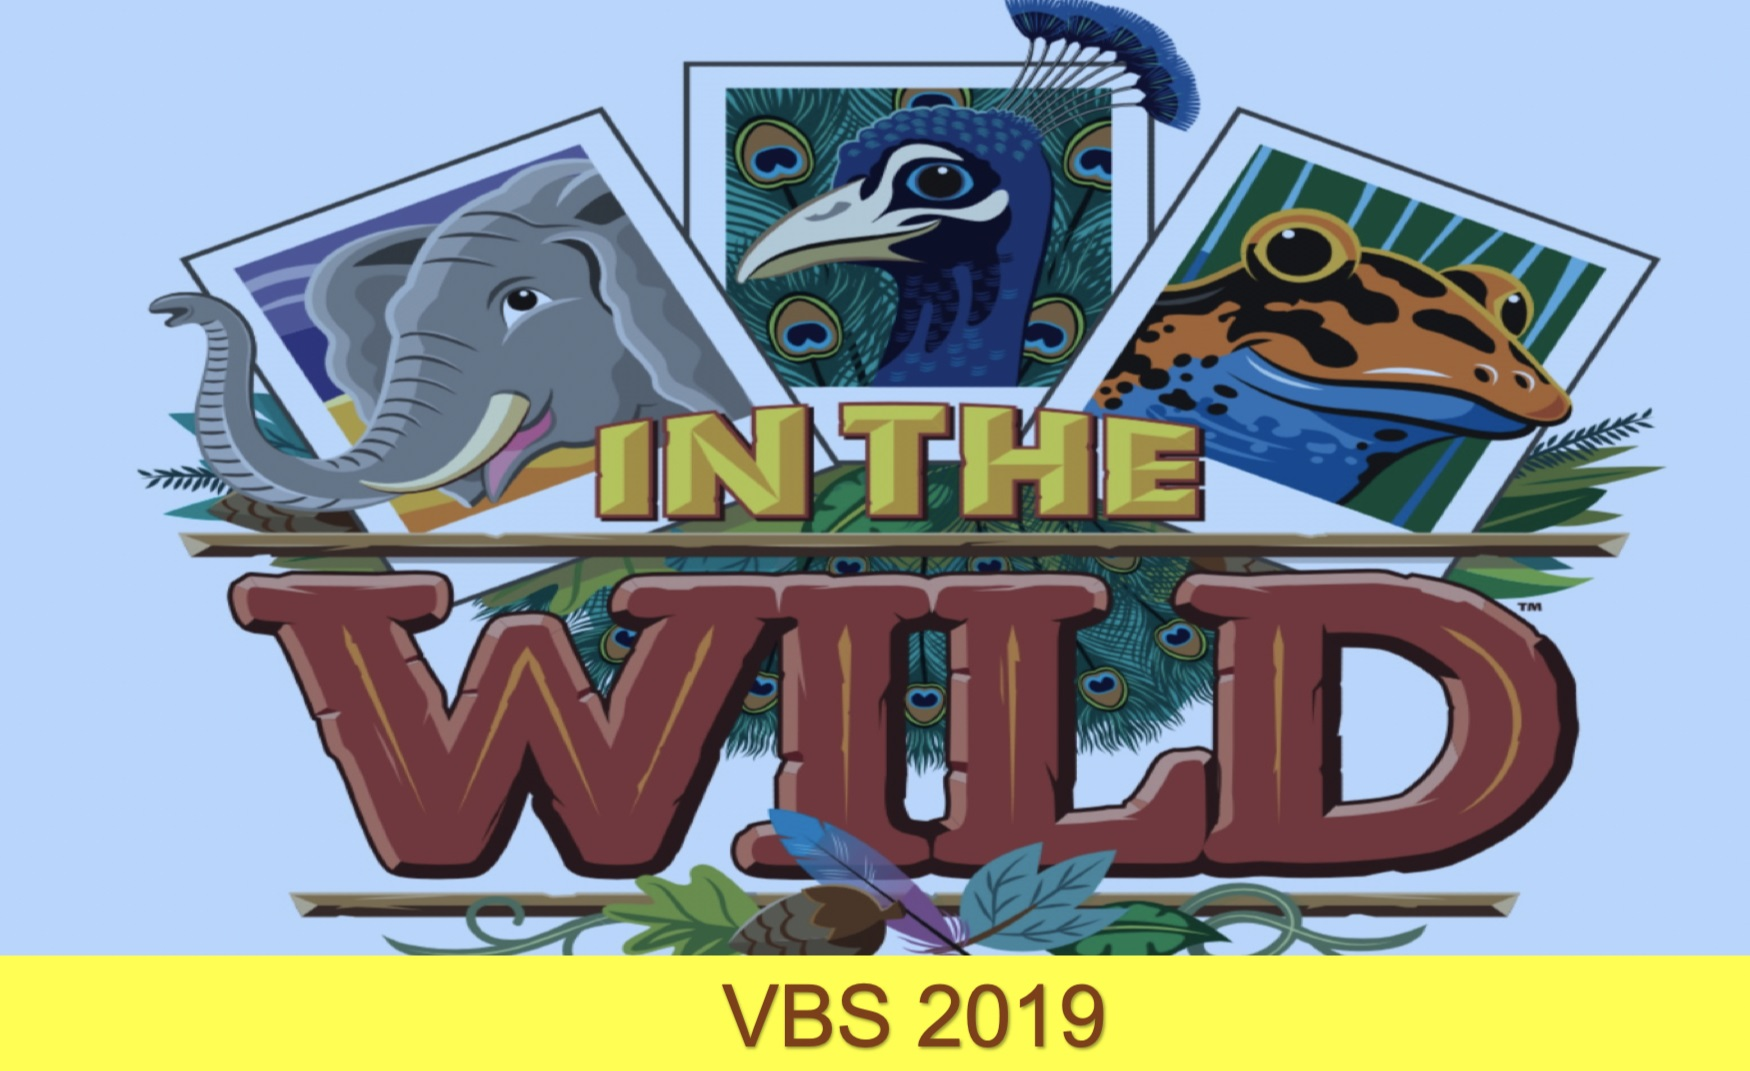 In The Wild VBS 2019 - June 23-26 from 6:30 to 9 pm at North Trident, throw on your camera strap and buckle your seatbelt. VBS 2019 takes you on a wild adventure—with elephants and egrets, polar bears and penguins, cockatoos and crocodiles. As you seek out exotic animals, you'll also find snapshots of real-life encounters with Jesus in Scripture. Kids go from bewildered to believing as they get In The Wild at this summer's VBS.